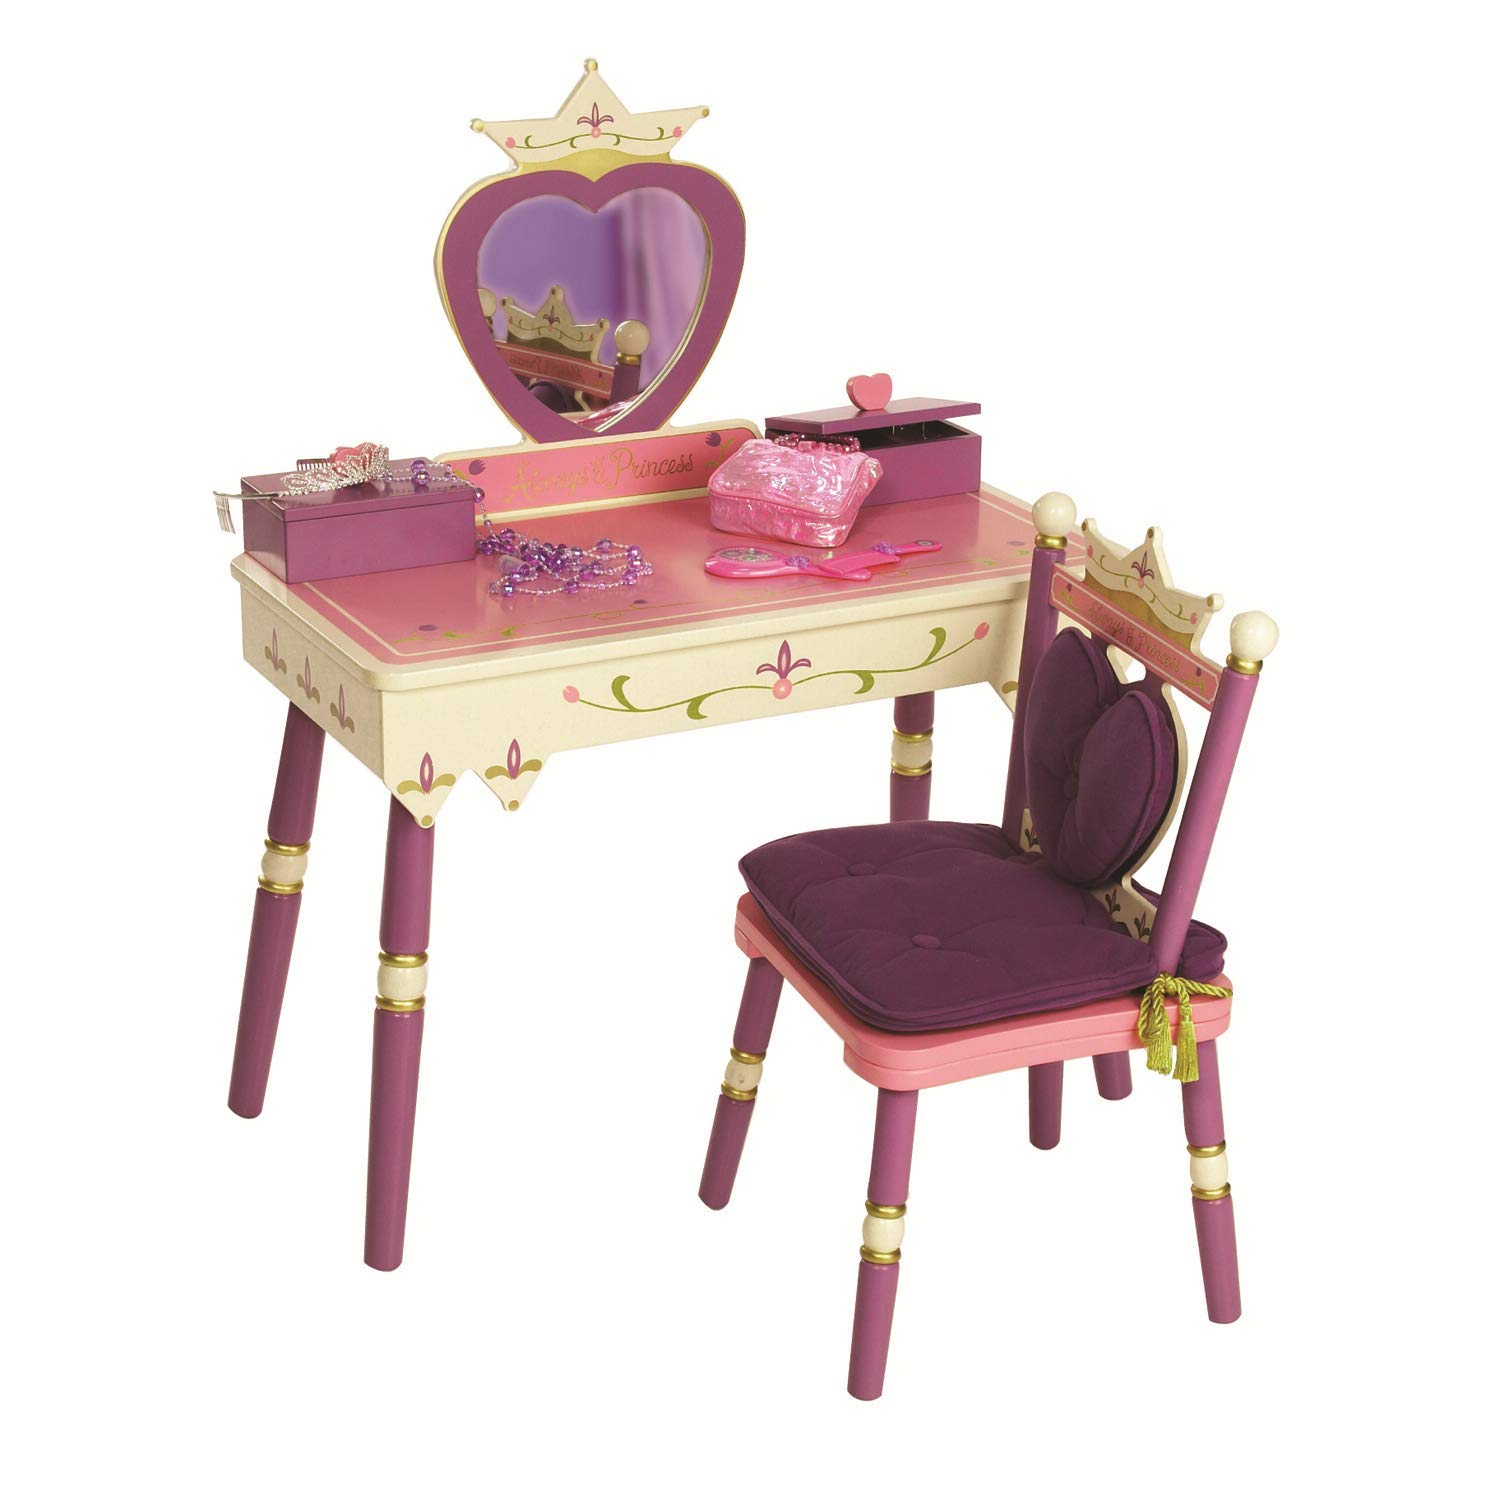 Wildkin Princess Vanity Table & Chair Set, Features Heart-Shaped Mirror, Two Jewelry Boxes, and Removable Plush Seat Cushions, Perfect for the Little Princess in Your Life – Pink